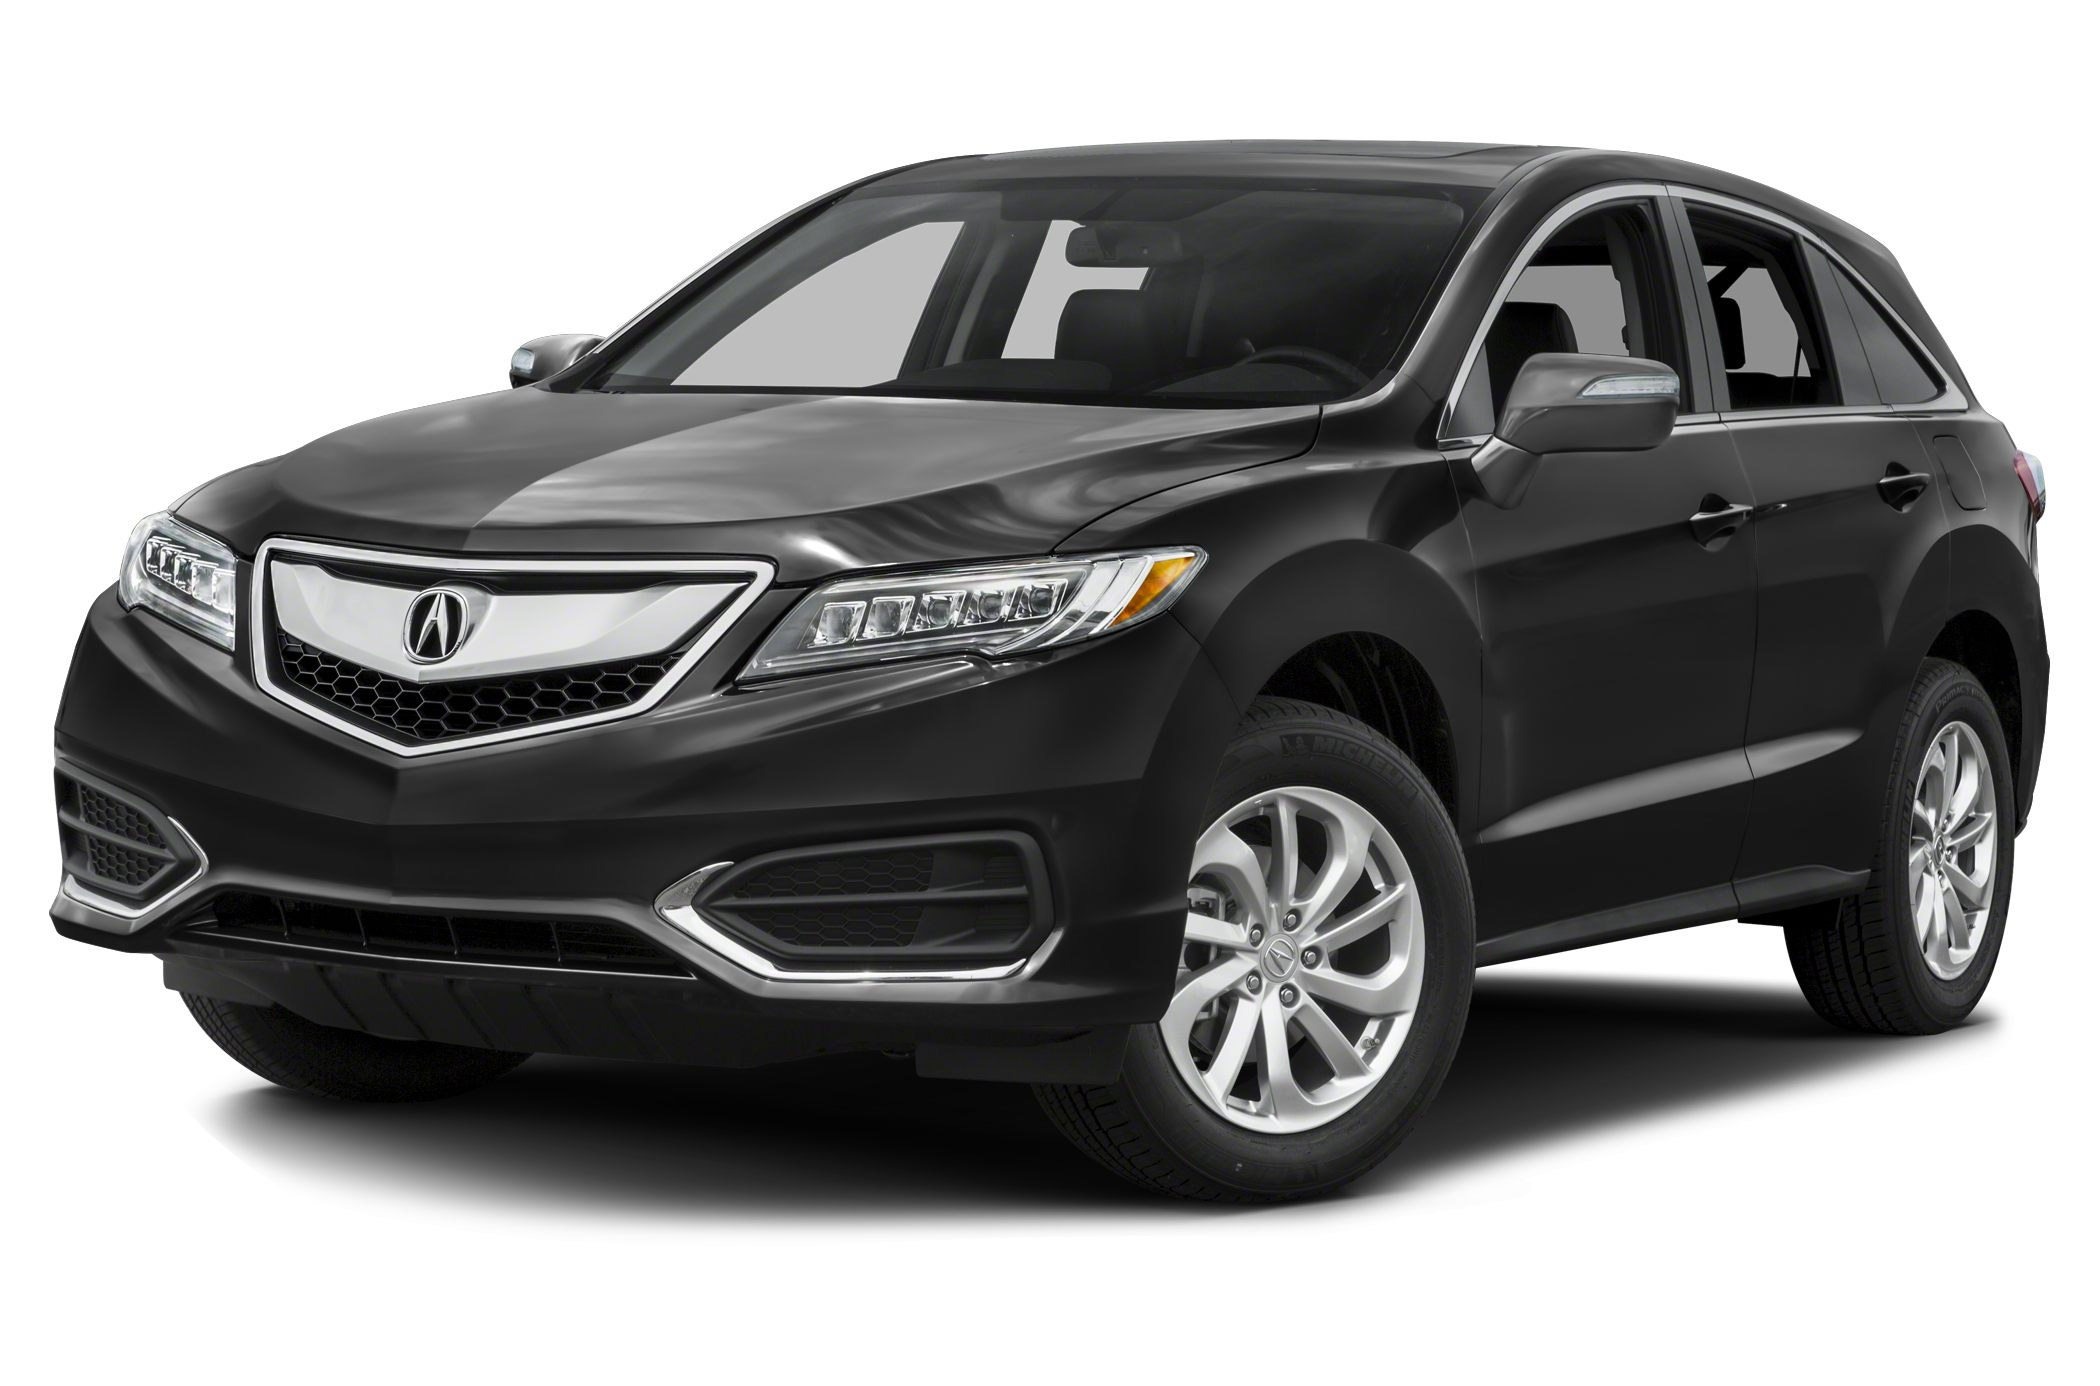 2016 Acura RDX Base Clean Carfax - One Owner - AWD - Technology Package - Navigation System - Back